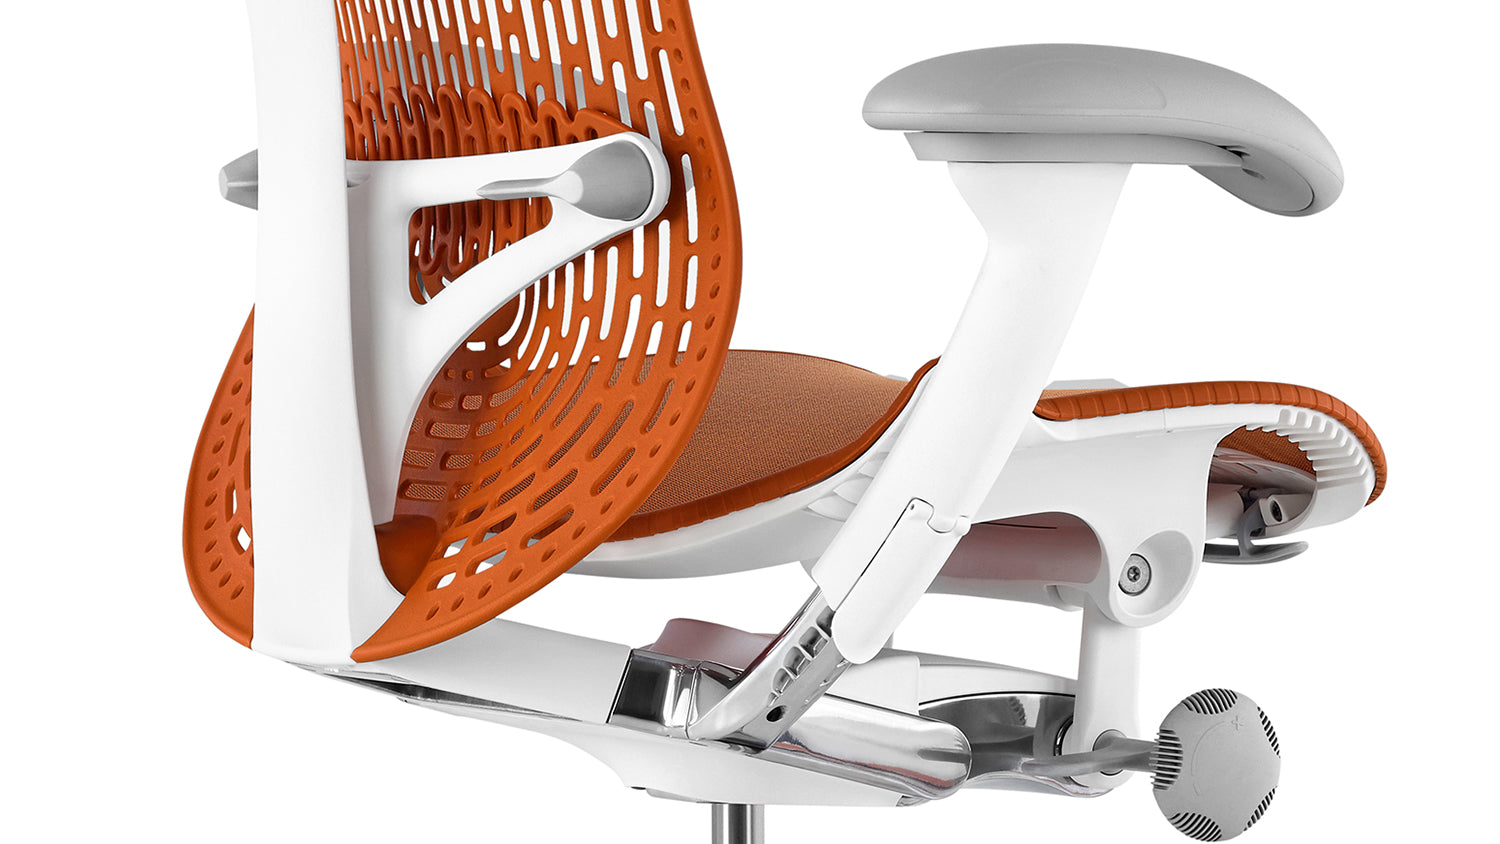 Rear view of an orange Mirra 2 chair